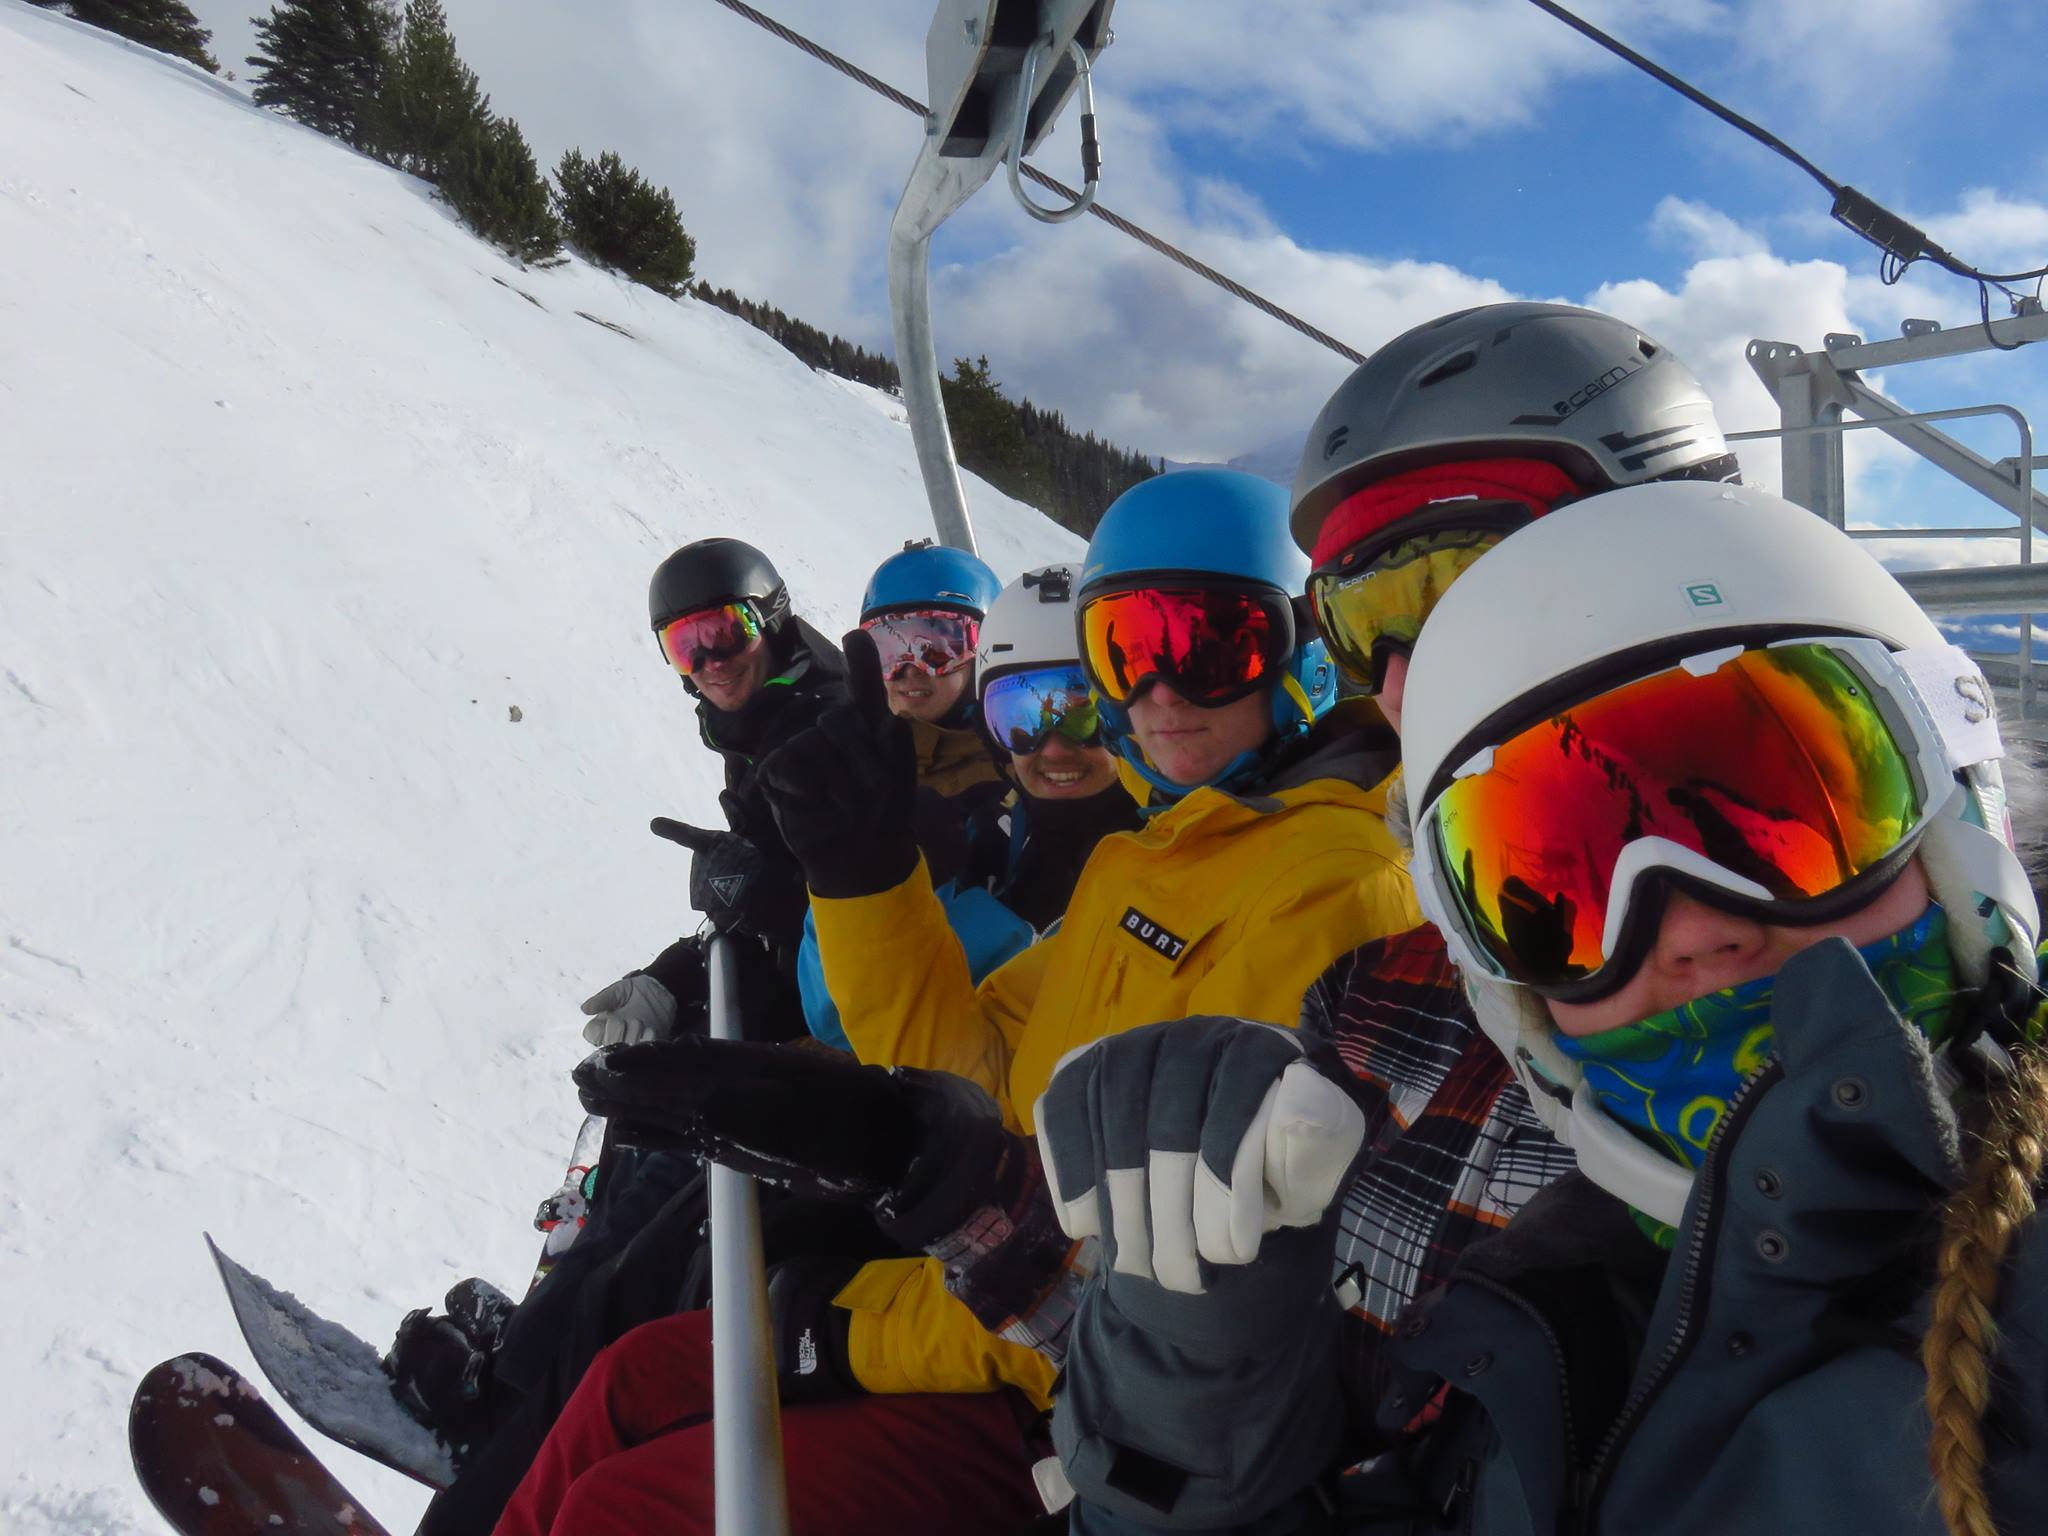 Banff 11 week Instructor Course - Week 3 Update from Cameron